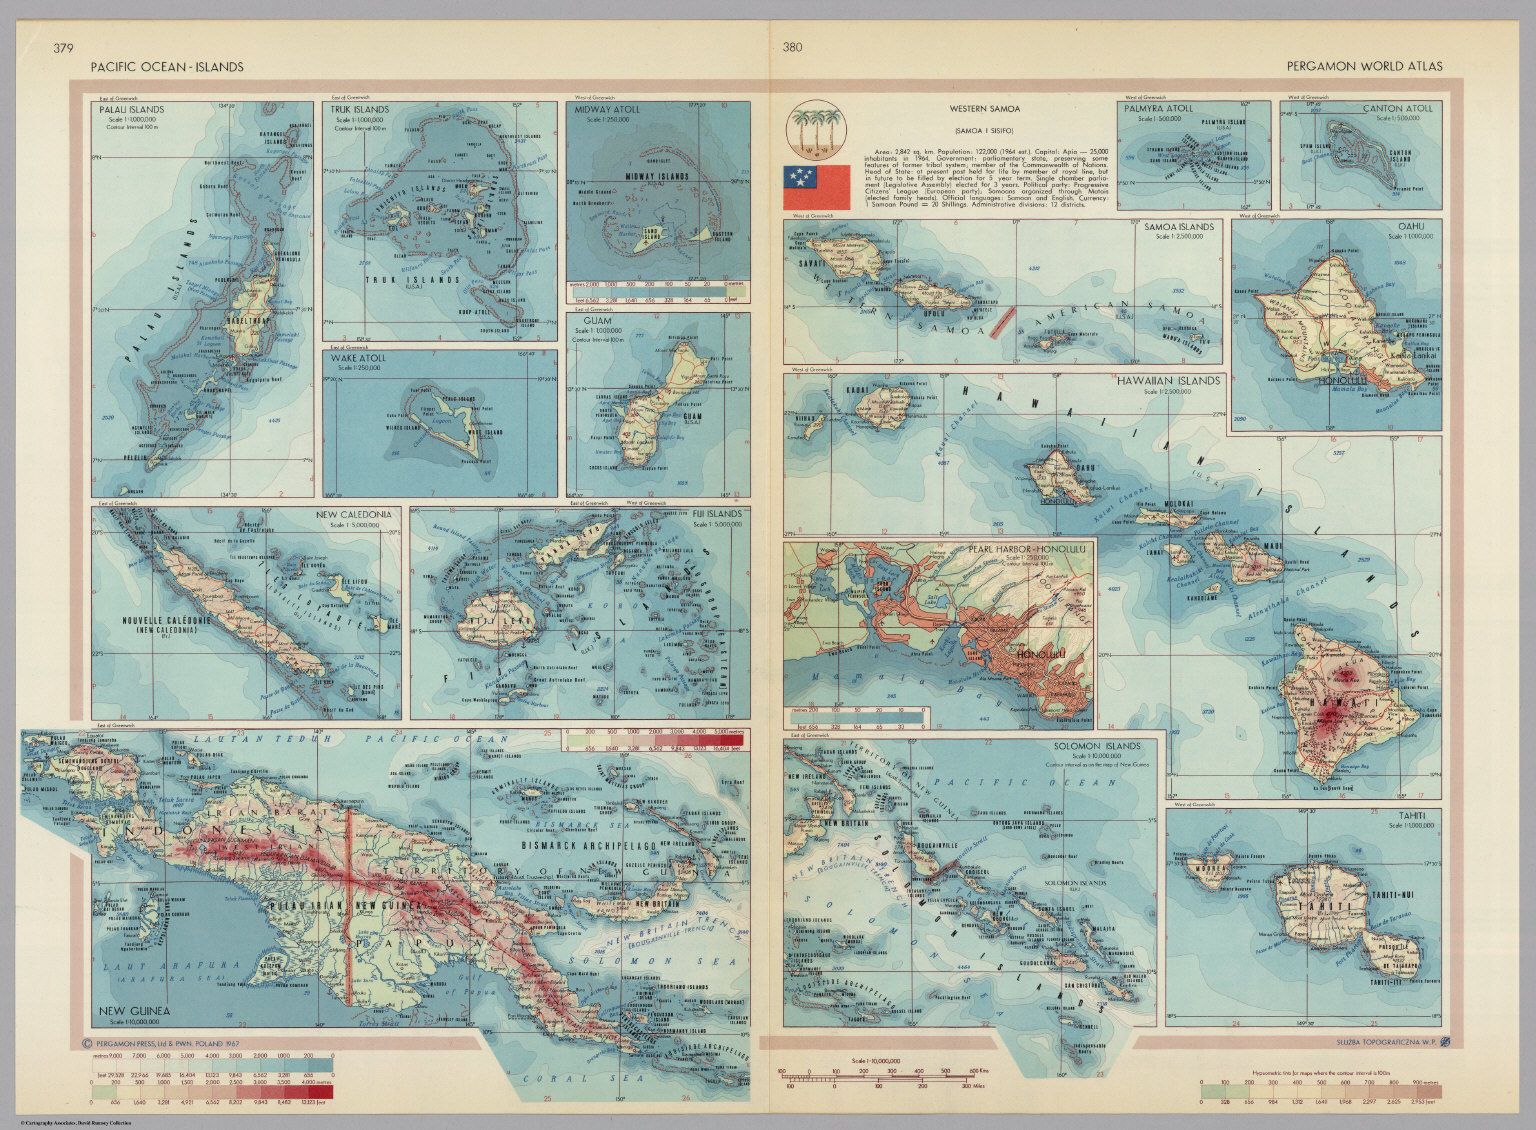 Pacific ocean islands pergamon world atlas david rumsey pacific ocean islands pergamon world atlas gumiabroncs Image collections